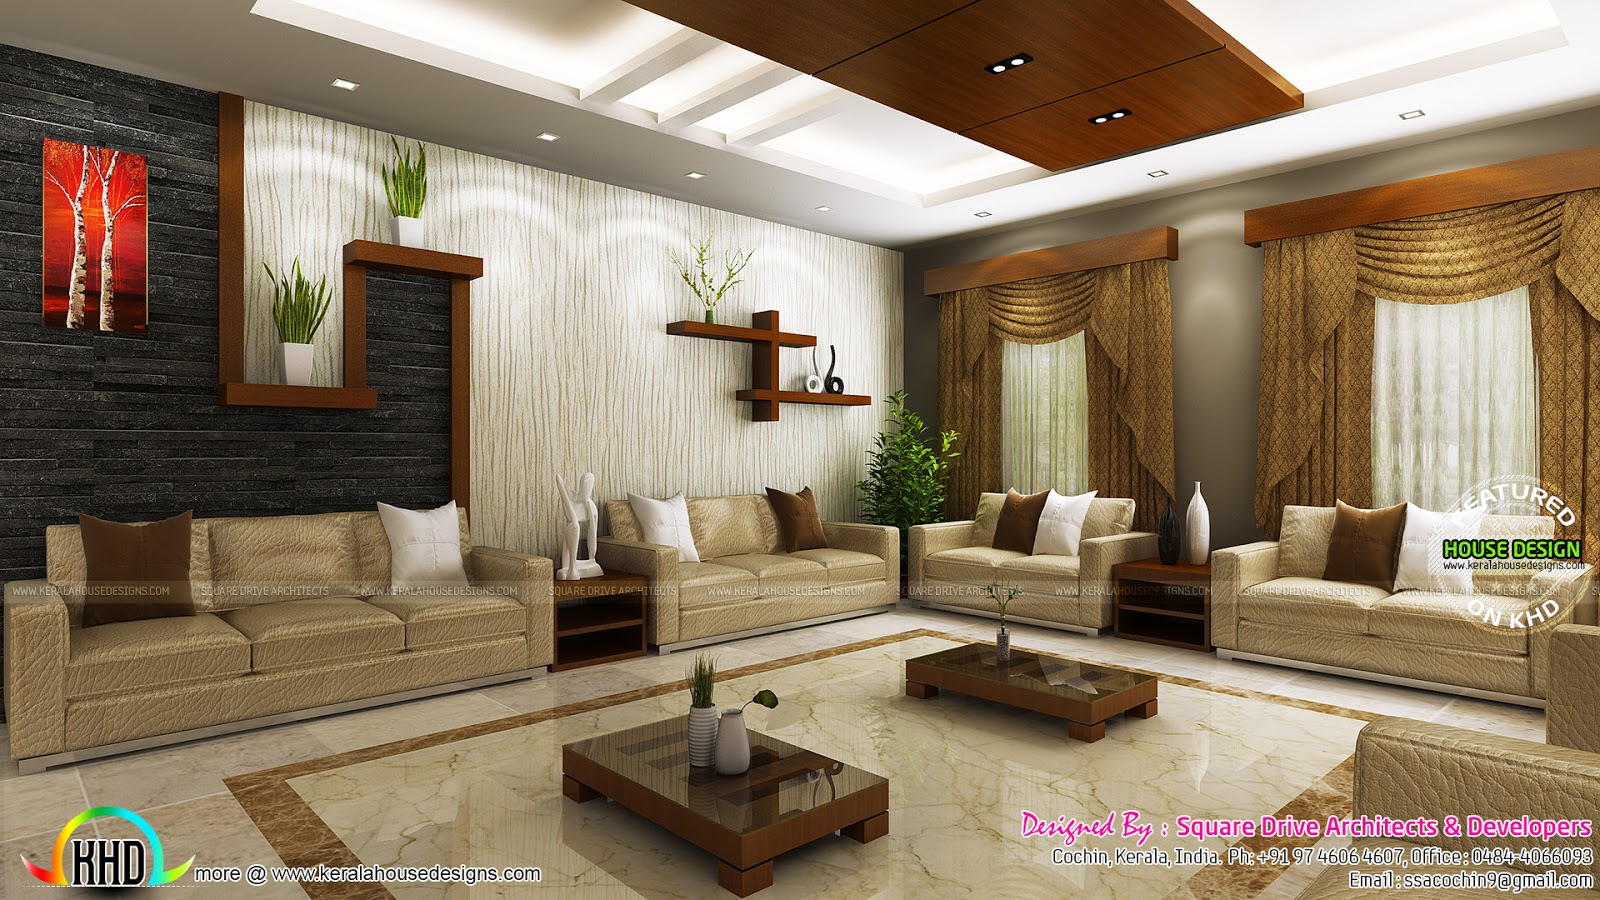 Stunning home interiors in cochin kerala home design and for Kerala home interior